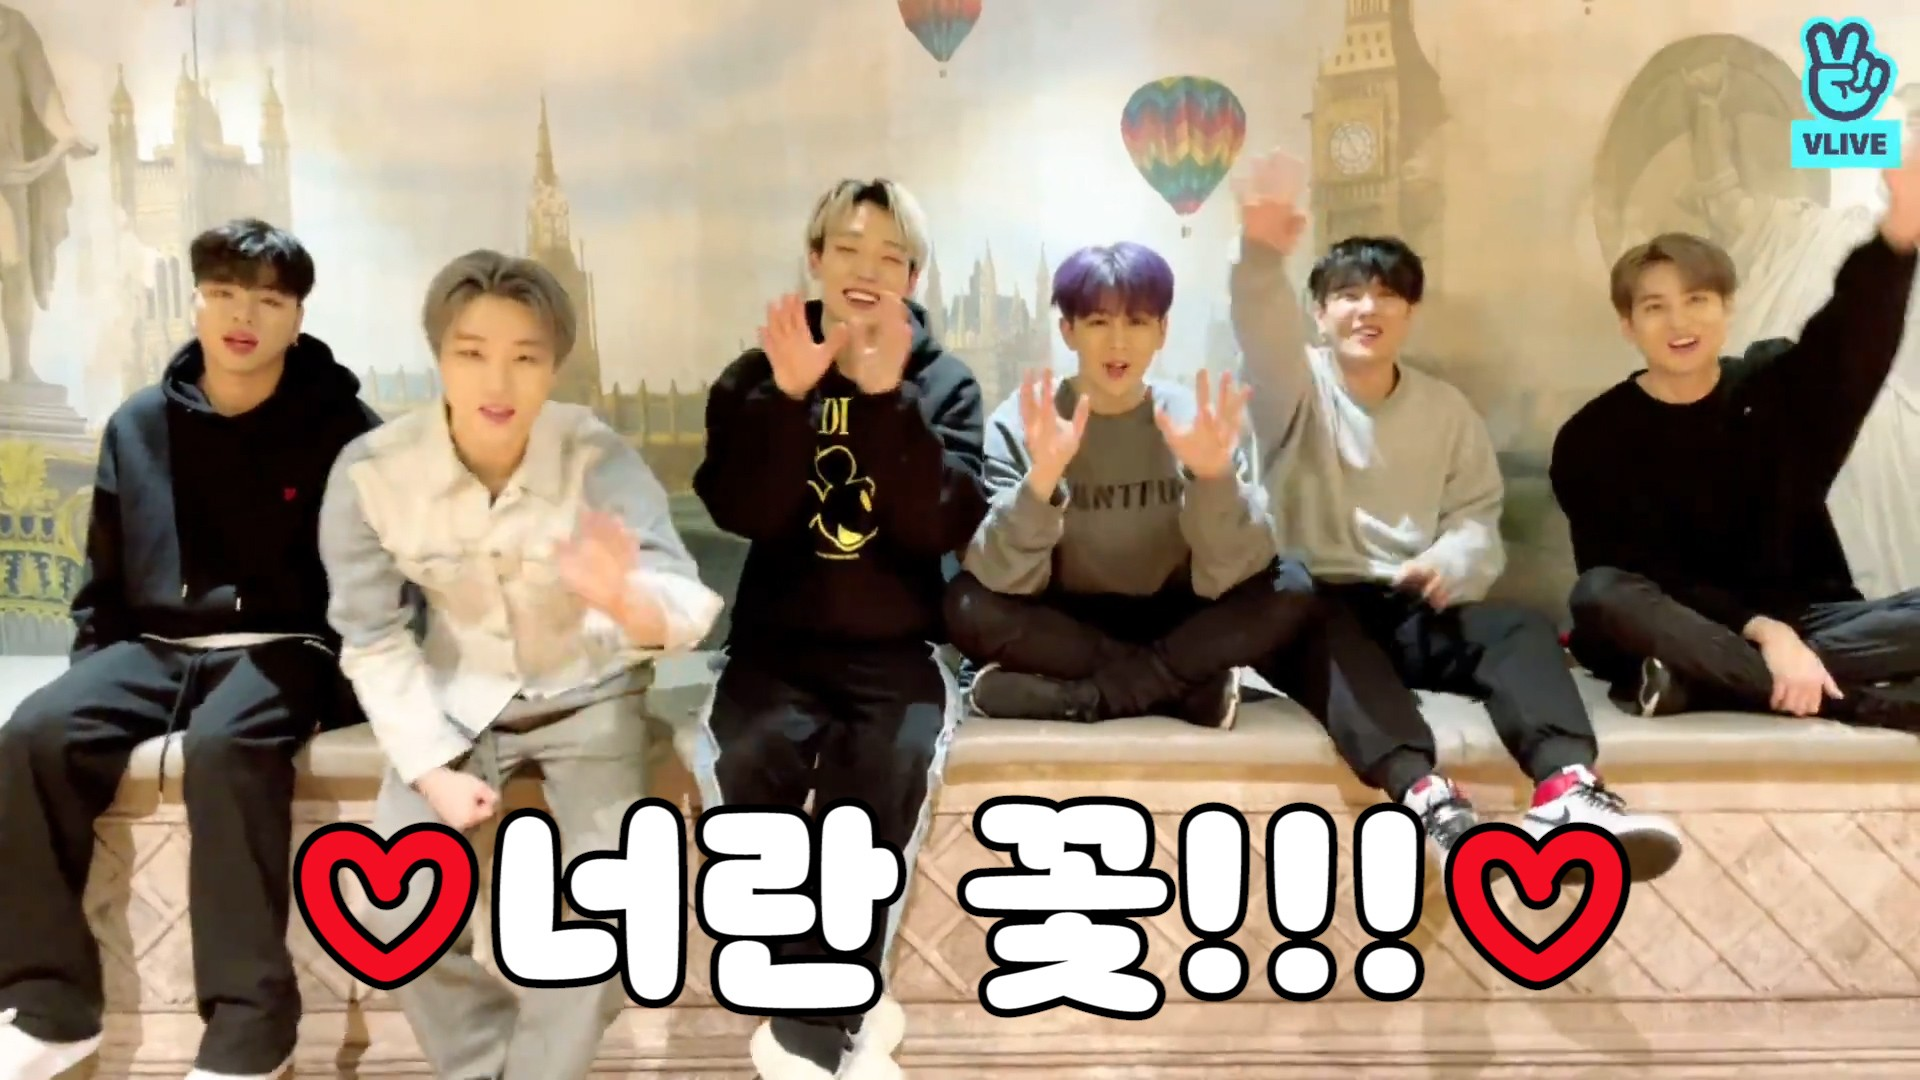 [iKON] 내가 제일 좋아하는 꽃은 아이콘 너란 꽃🌸💕 (iKON's V after last broadcast for 'Why Why Why')